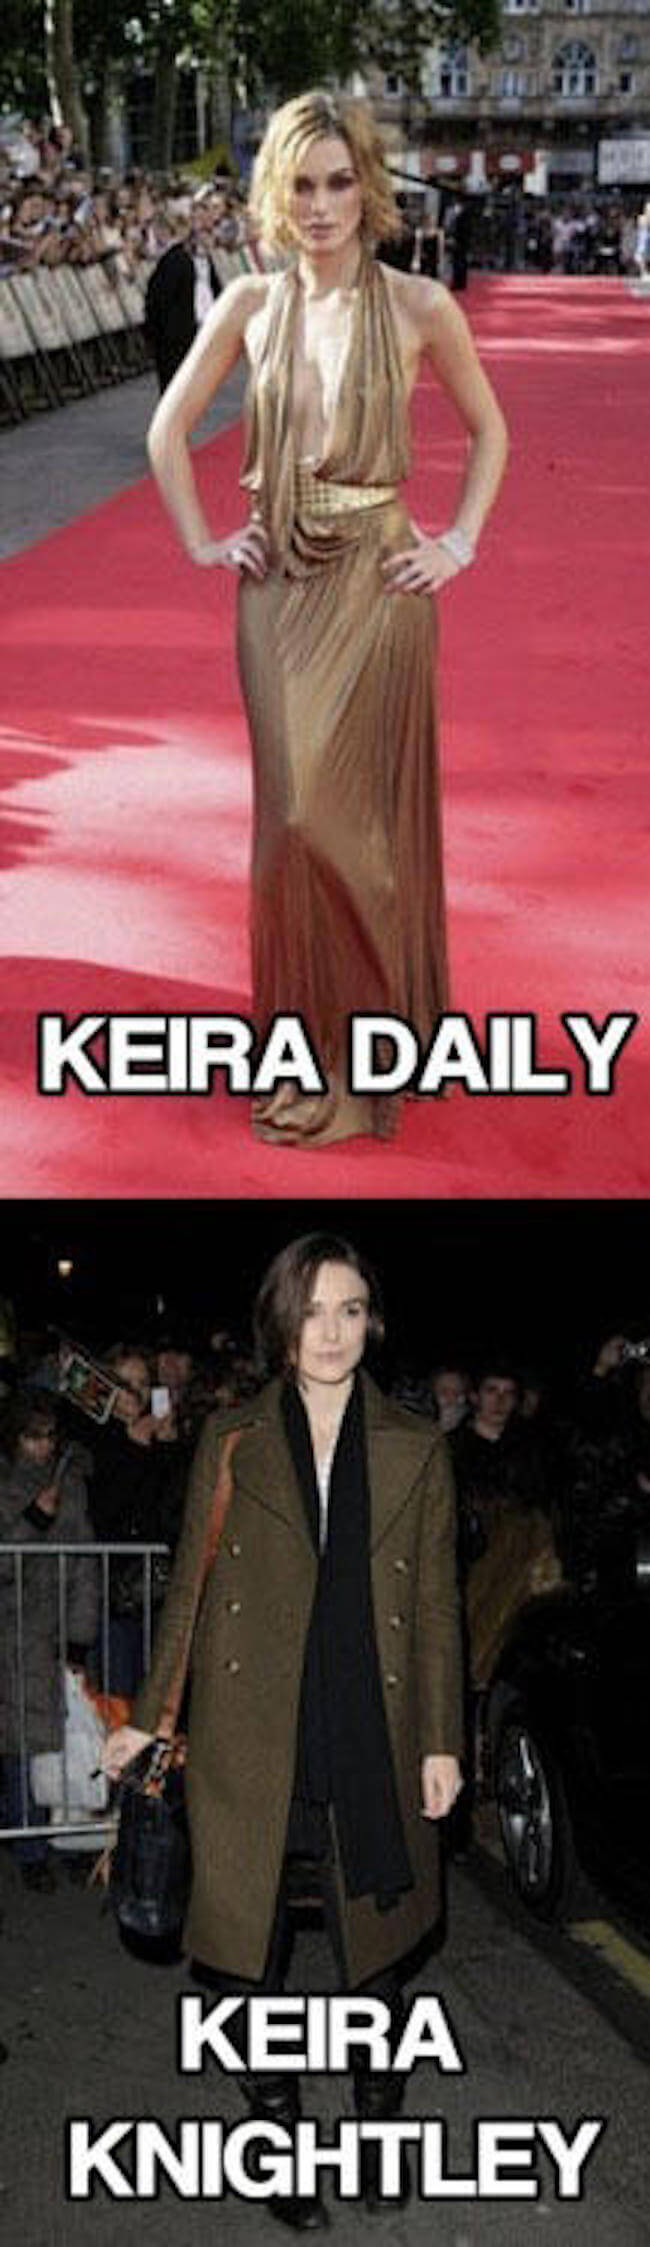 Funny Celebrity Name jokes 20 (1)